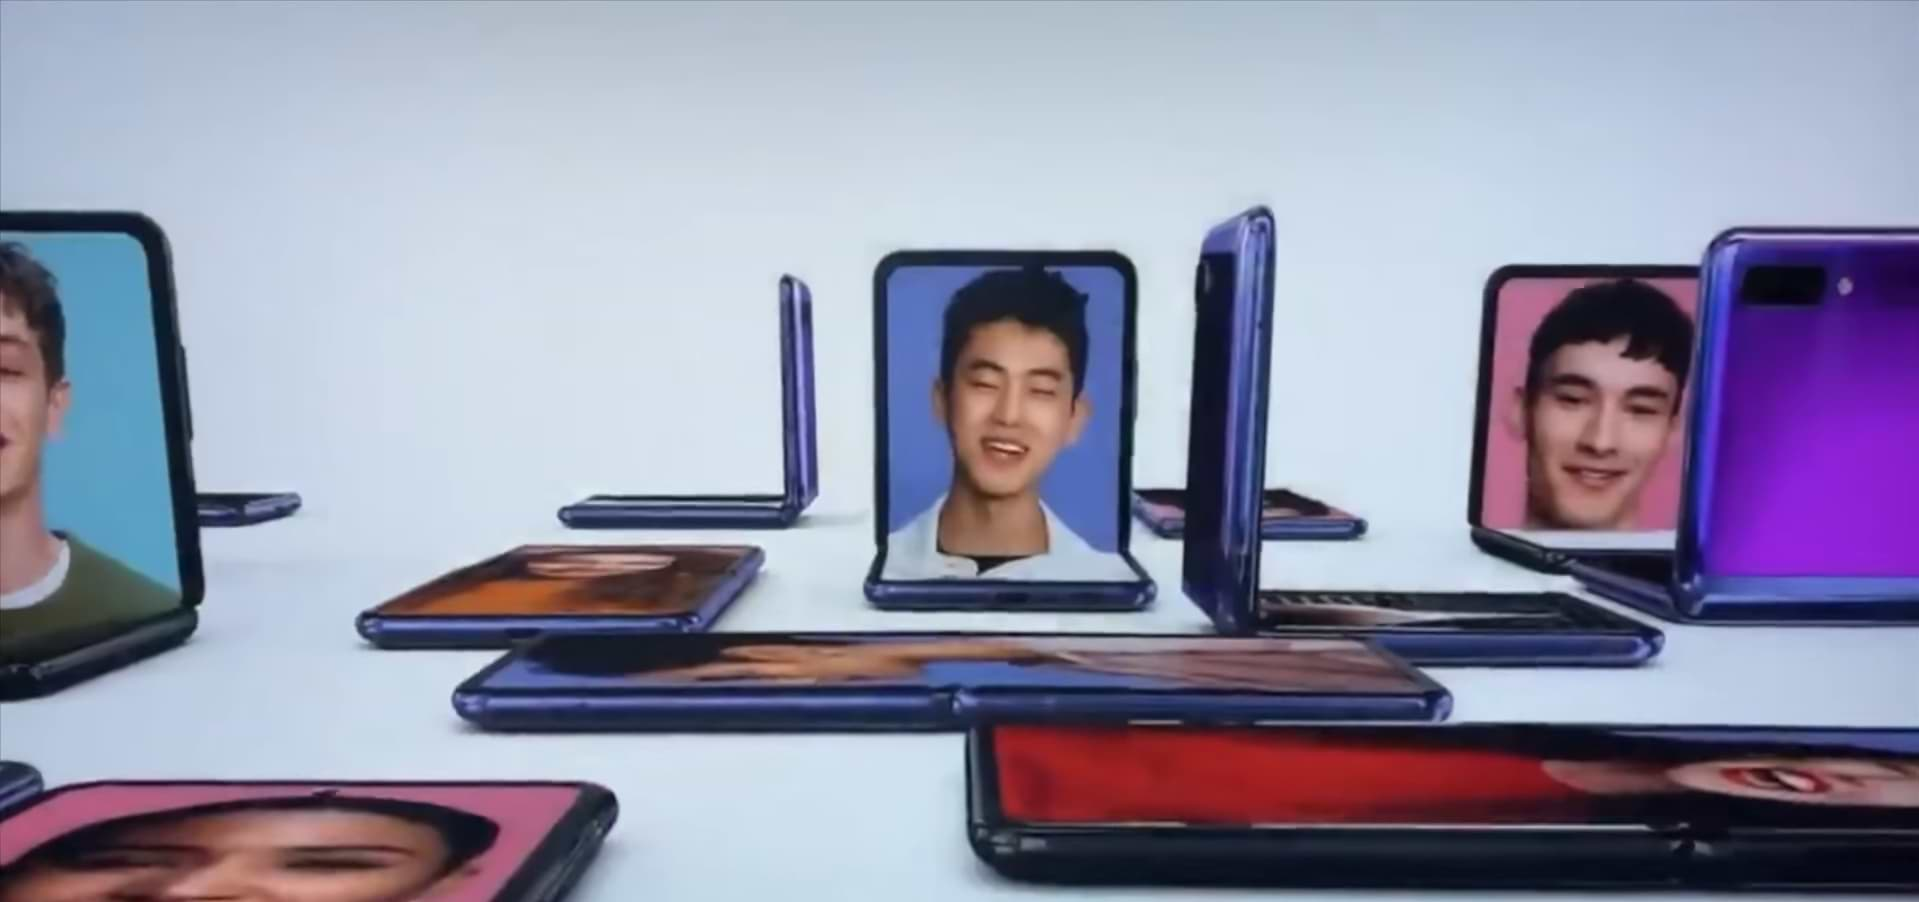 Galaxy Z Flip Samsung has shown its new folding mobile in the Oscars